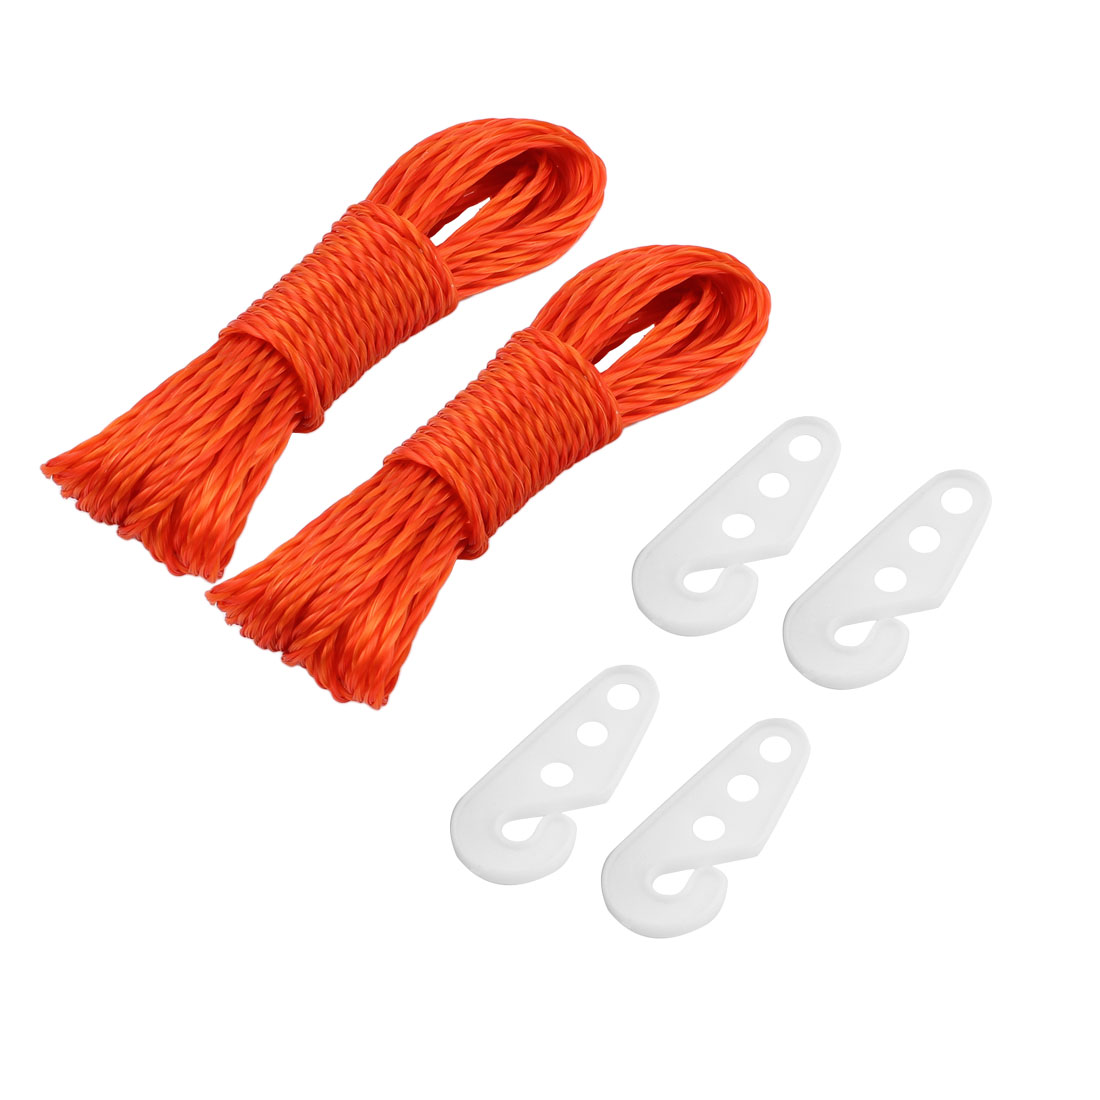 Laundry Nylon Clothesline Clothes Towel Hanging Line Rope String 10M Yellow 2pcs